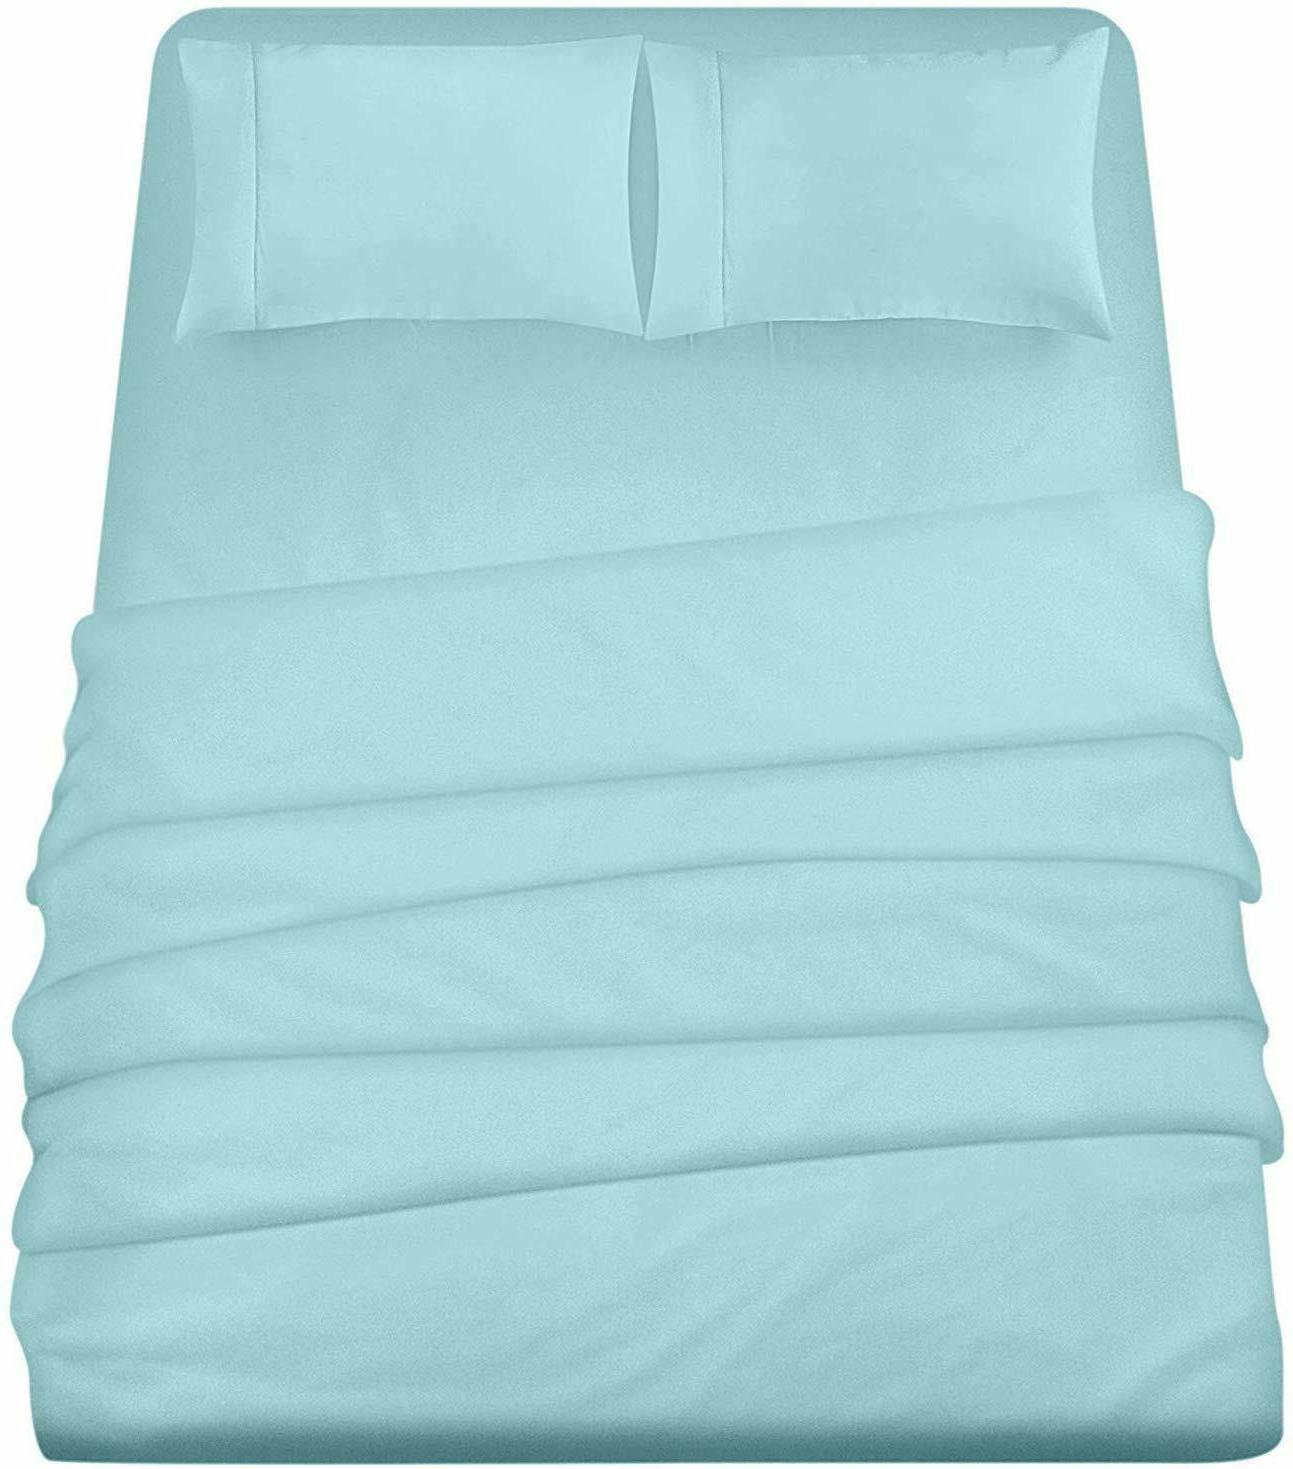 Soft with Cases Bedding